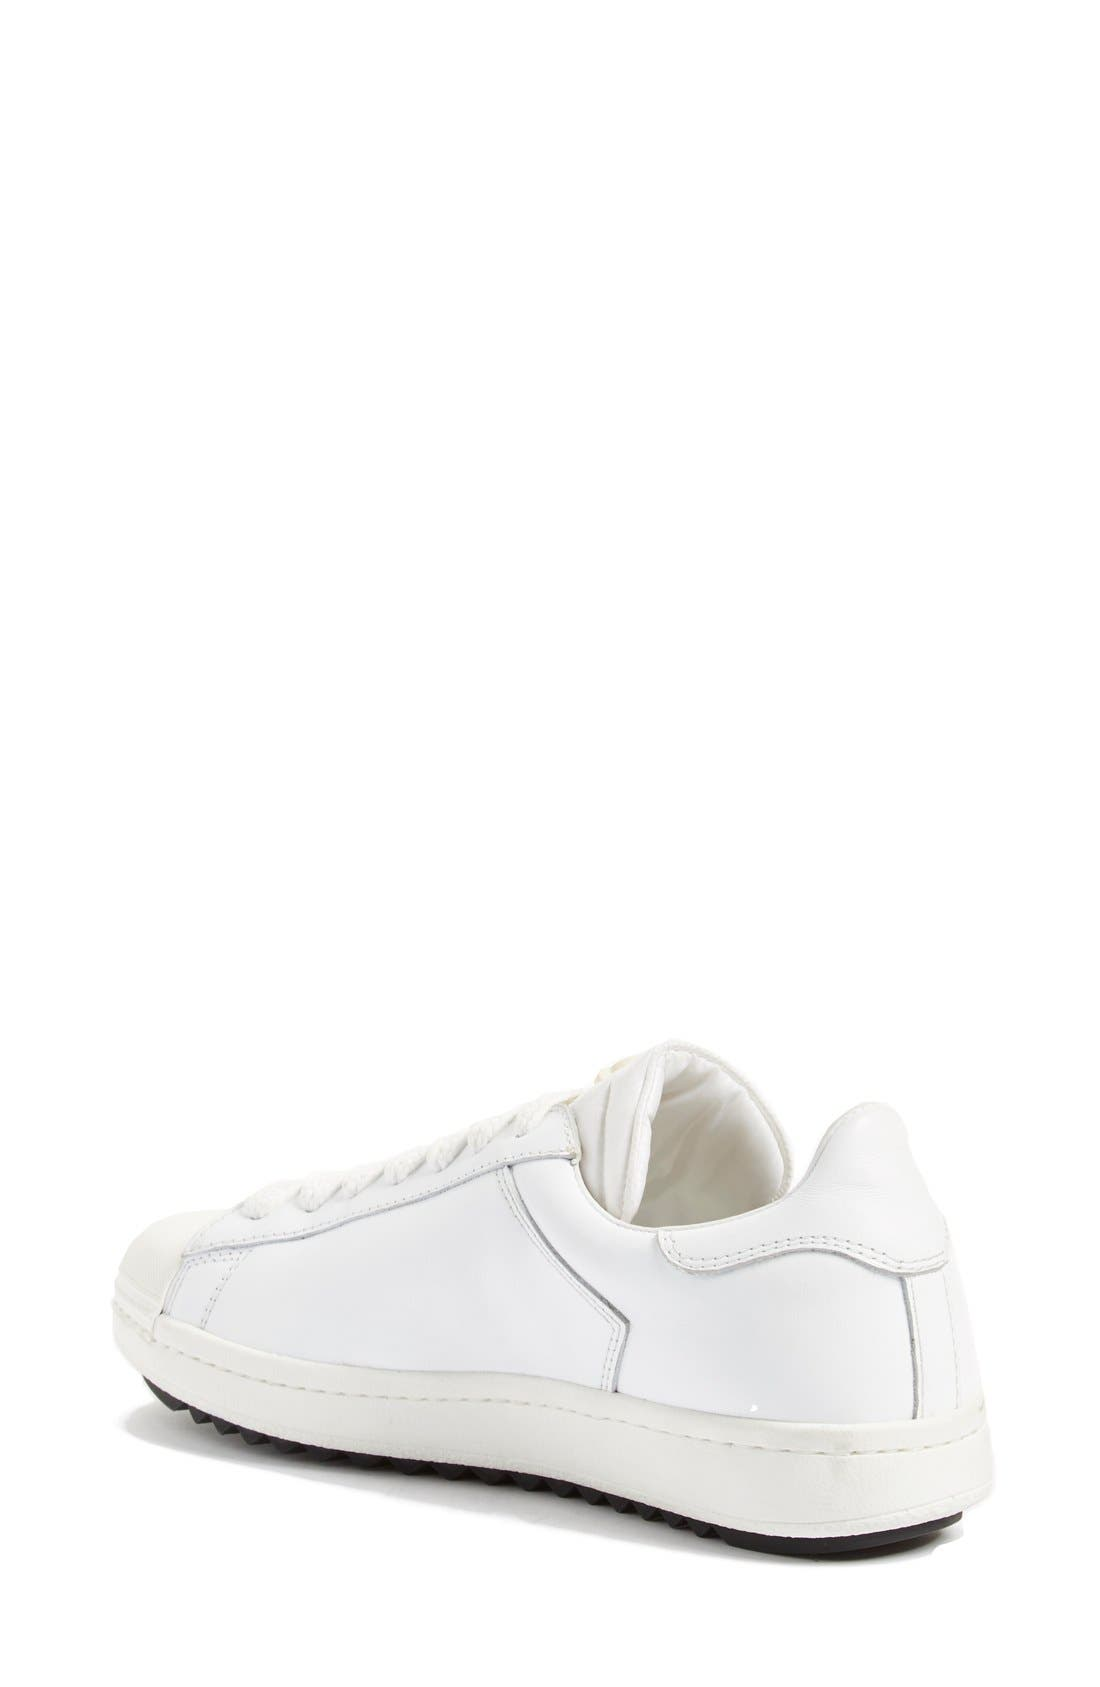 'Angeline Scarpa' Sneaker,                             Alternate thumbnail 2, color,                             White Leather